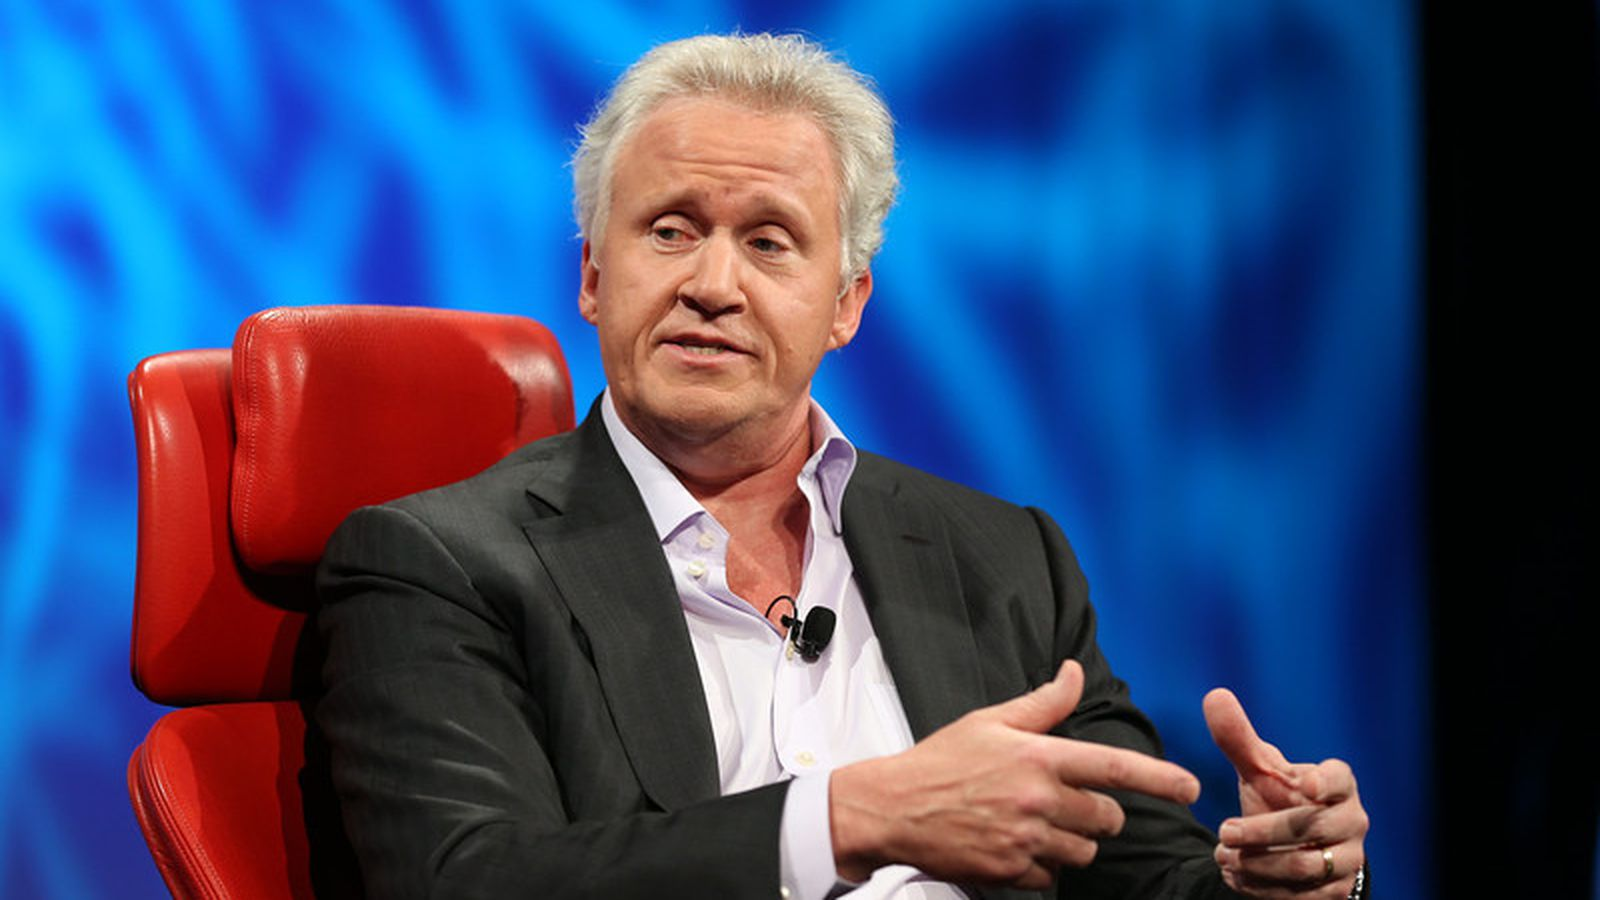 Jeff Immelt emerges as frontrunner to become Uber CEO